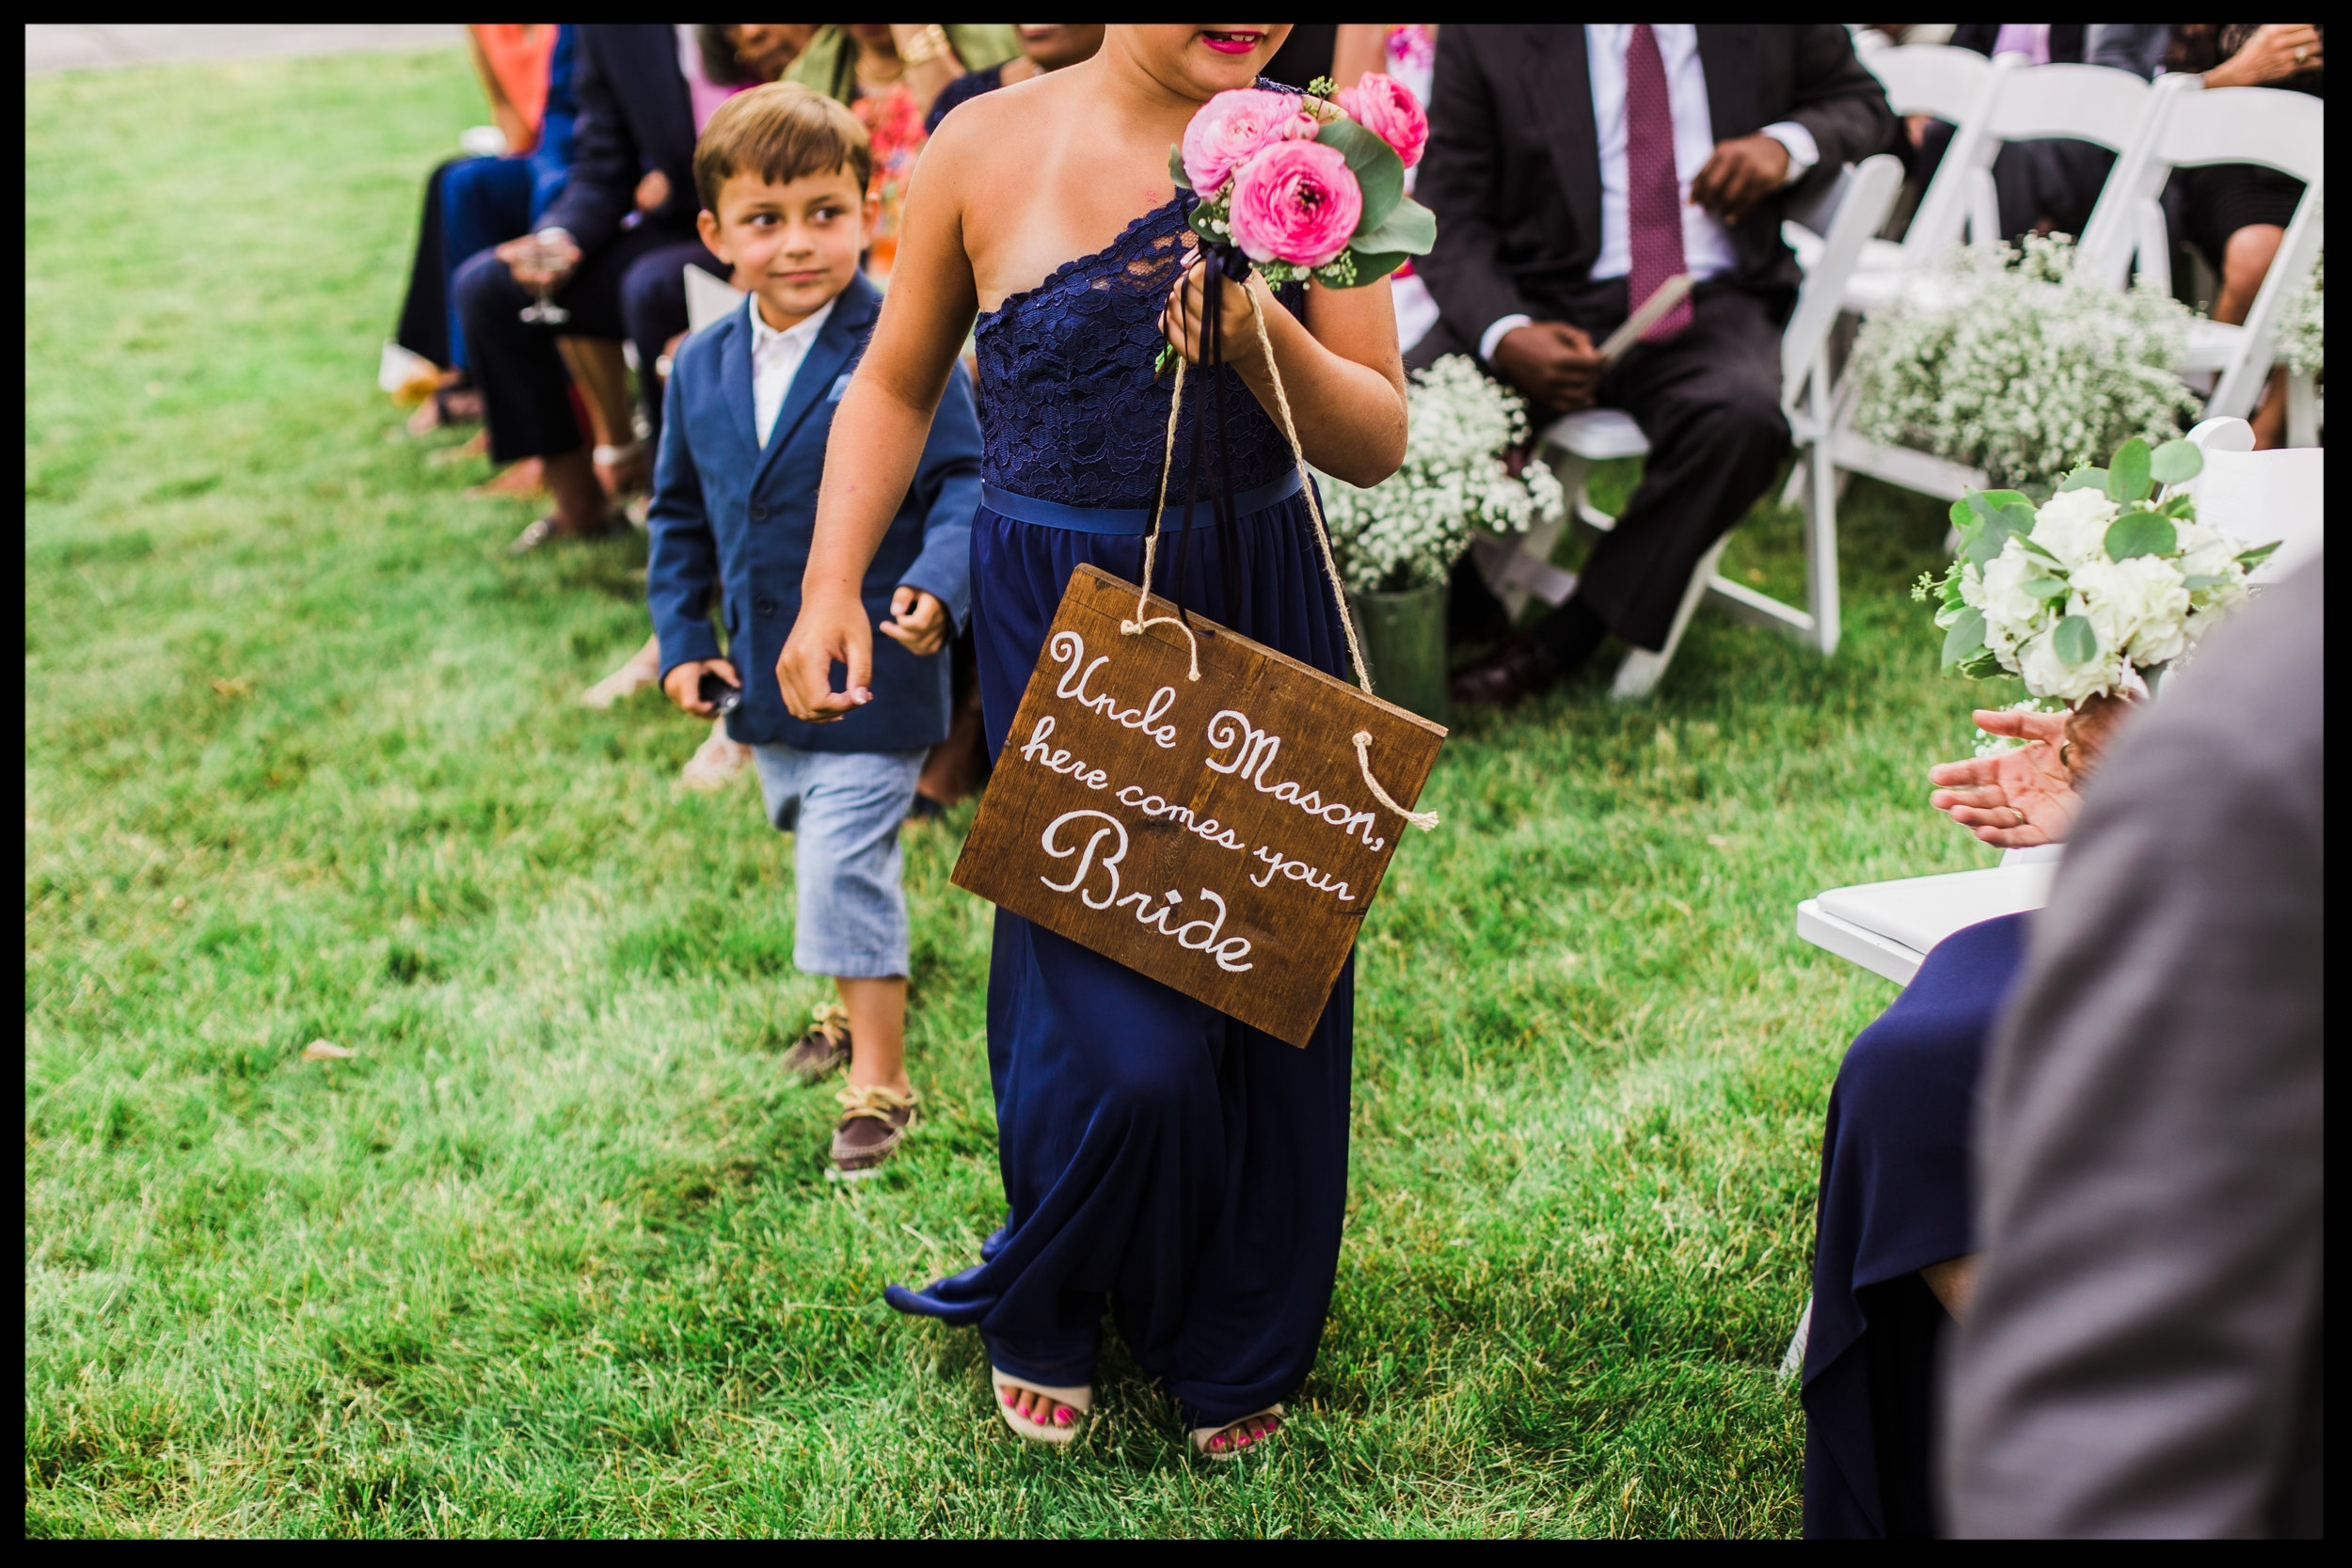 flower girl | flower girl trends | wedding | wedding trends | favorites for the flower girl | flower girl favorites | flower girls